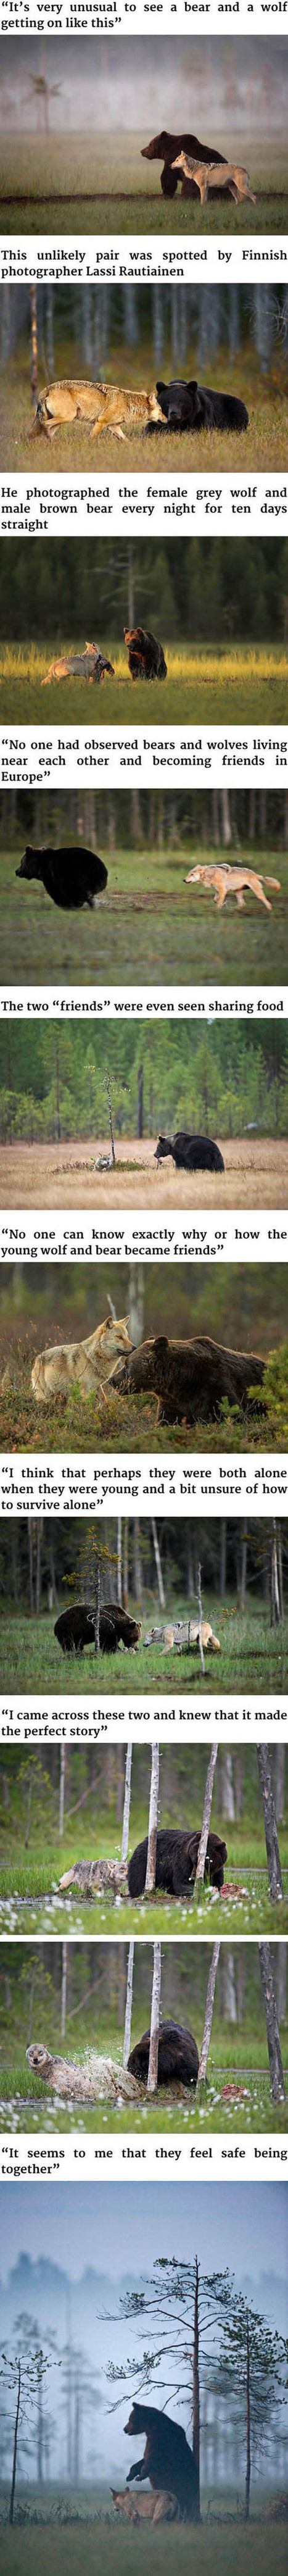 Unusual Friendship Between Wild Wolf And Wild Bear | This Gives Me Hope | Scoop.it